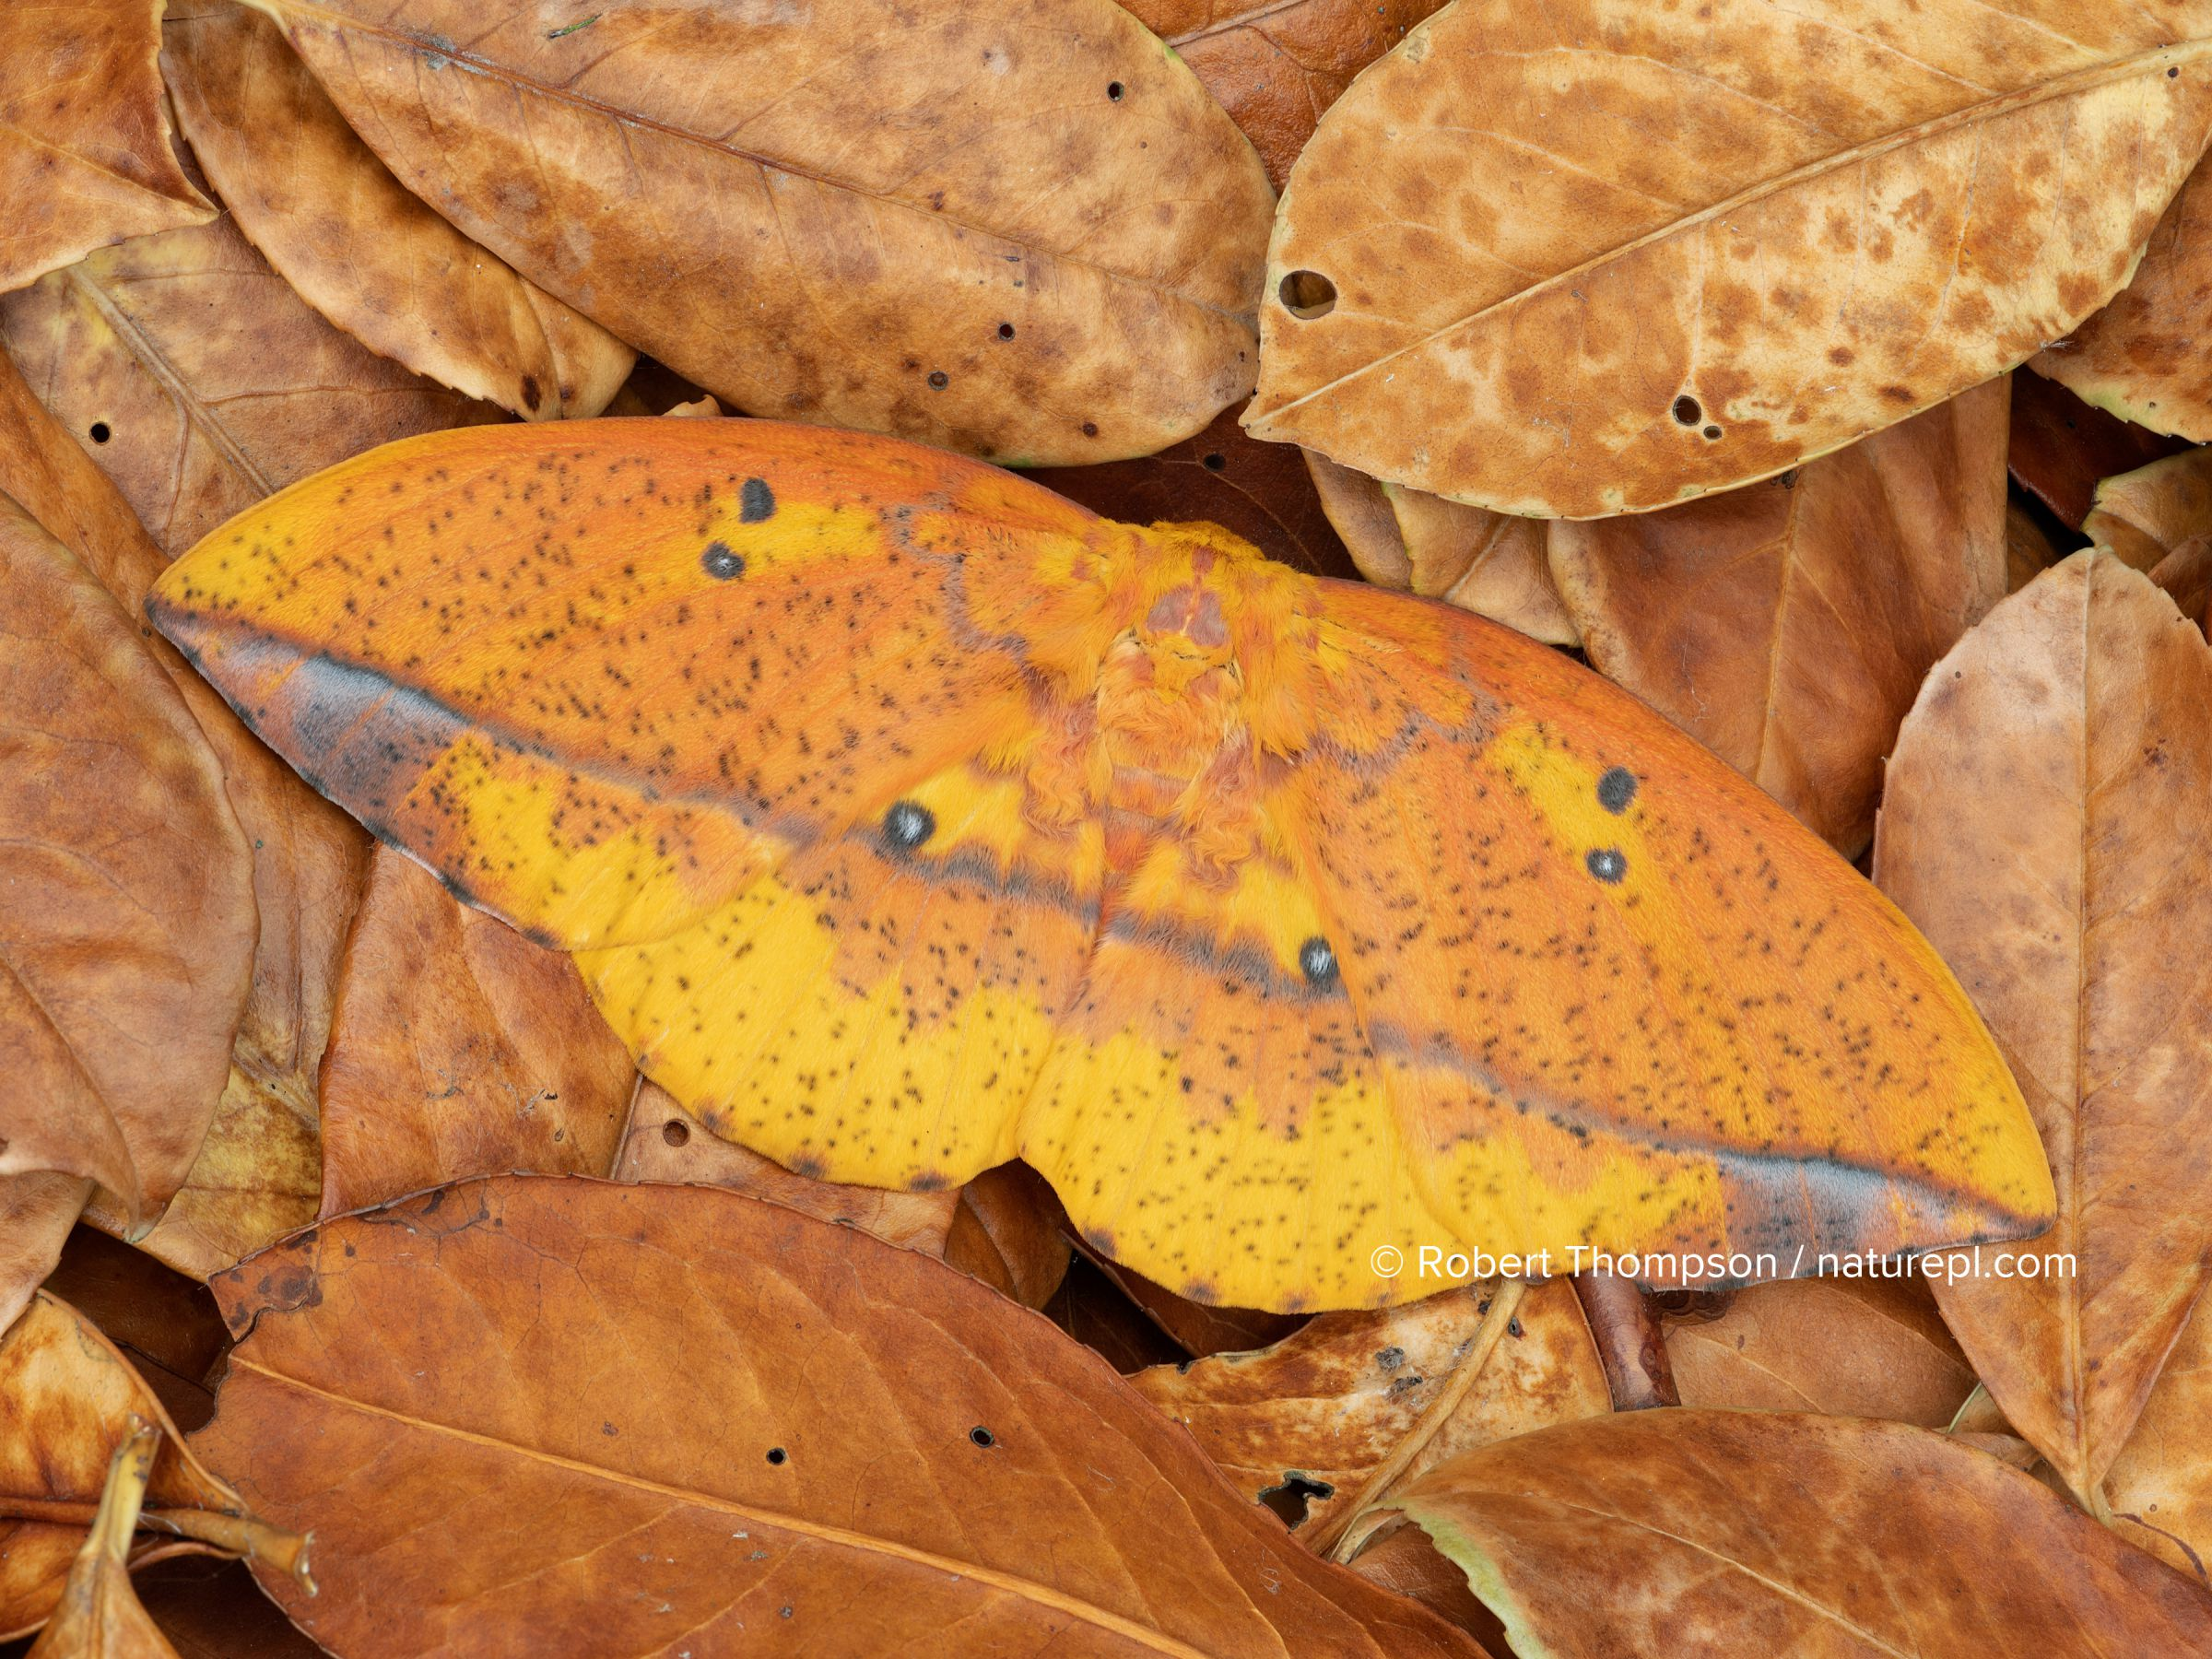 Saturniid moth (Eacles ormondei), female camouflaged in leaf litter. Izabal, Guatemala.